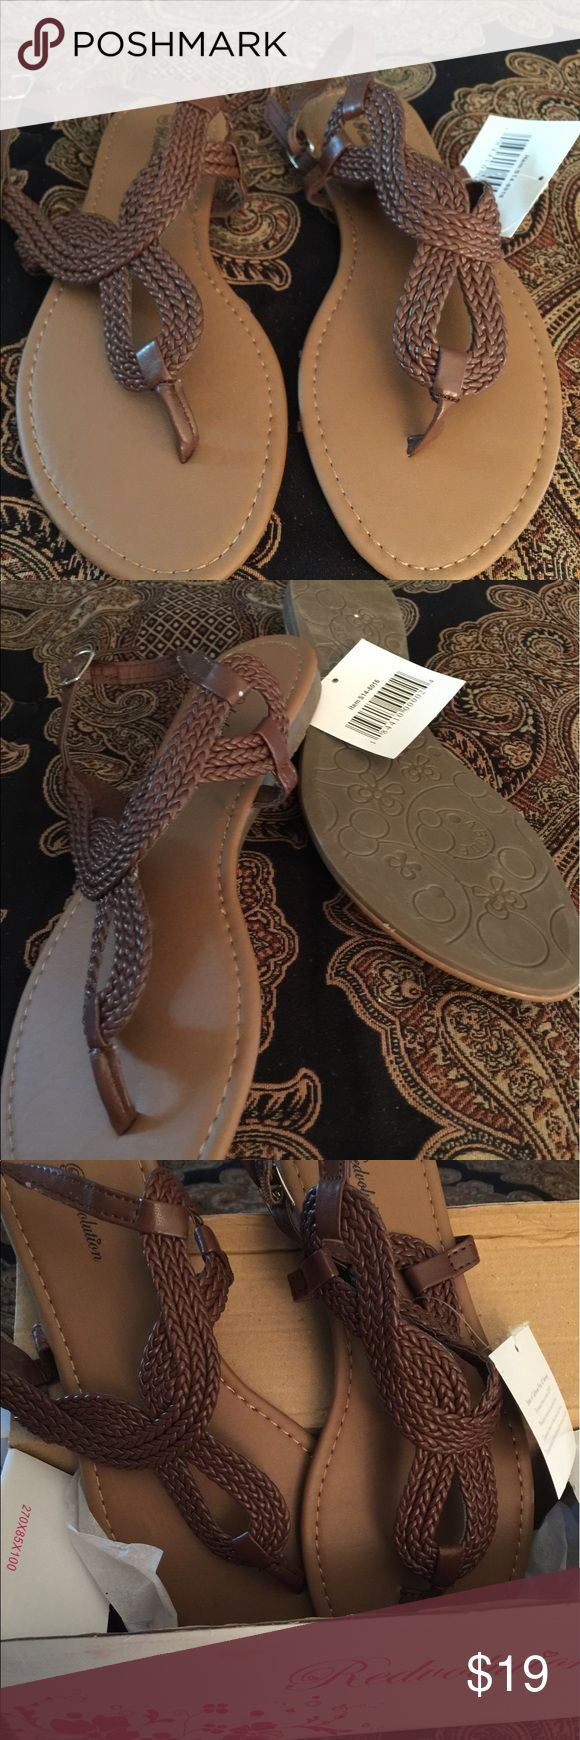 New...gladiator flat sandal size 10 New item with box.. Gladiator Flat sandal with T-strap ...durable TPR outsole...soft PU insole...braided upper ...size 10... run true to size!!! Shoes Sandals